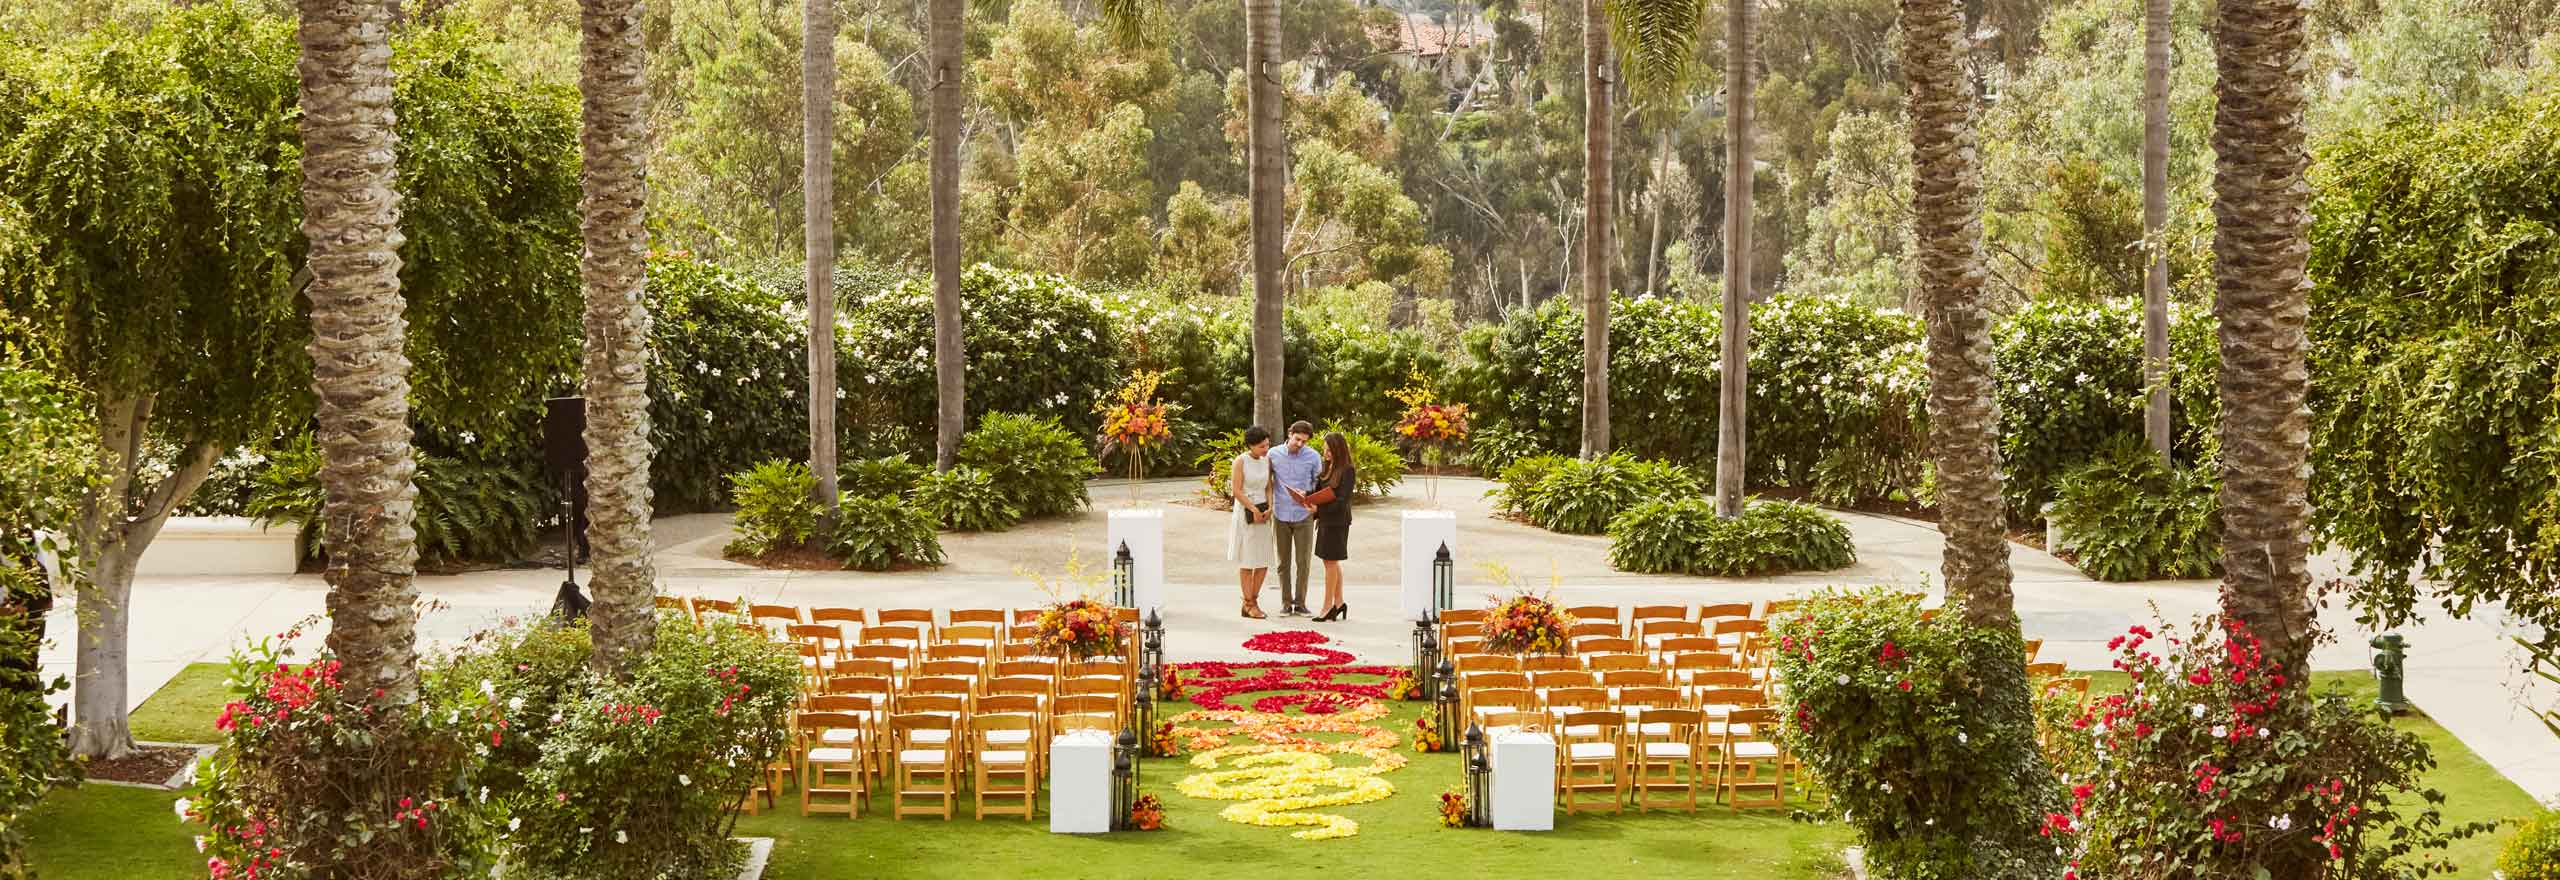 outdoor wedding rehearsal